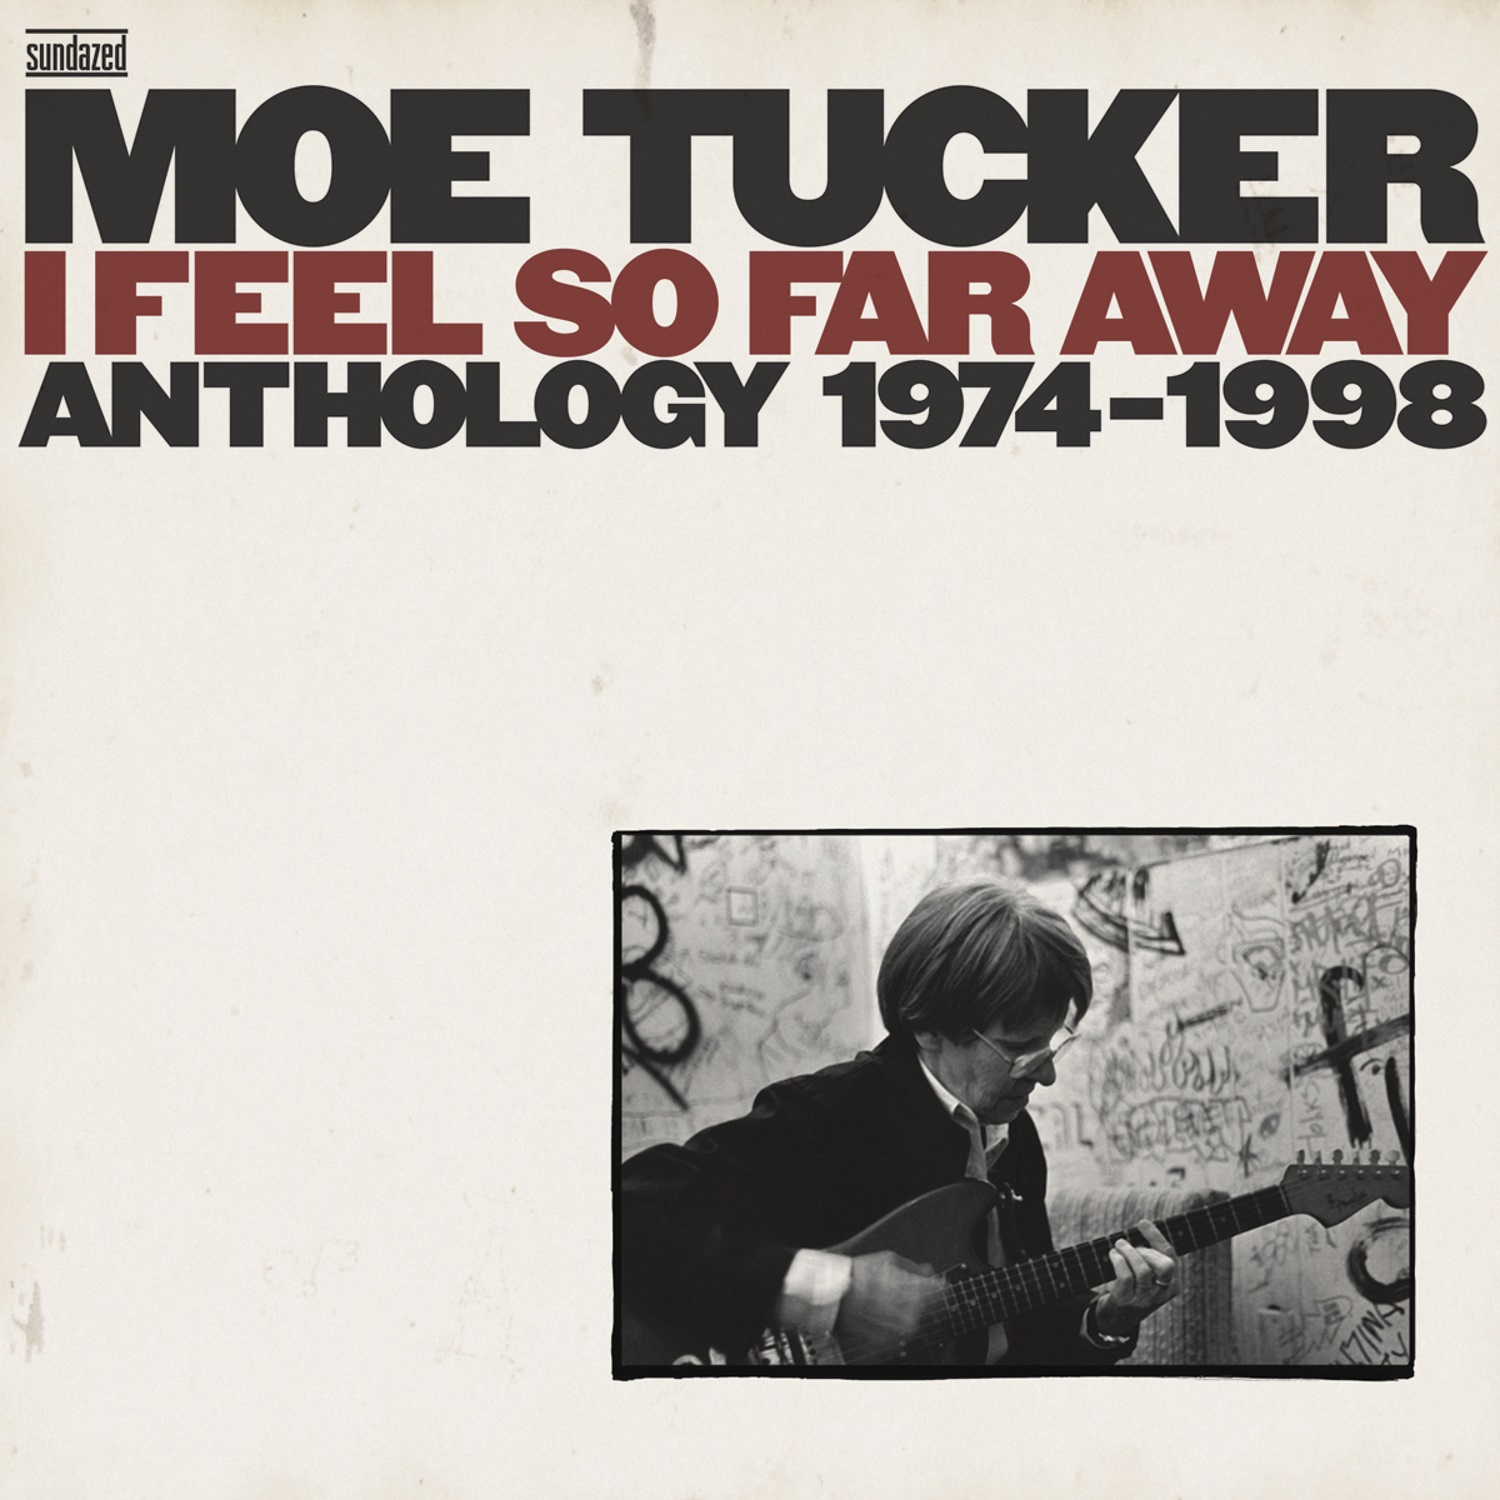 Tucker, Moe - I Feel So Far Away: Anthology 1974-1998 3-LP Set